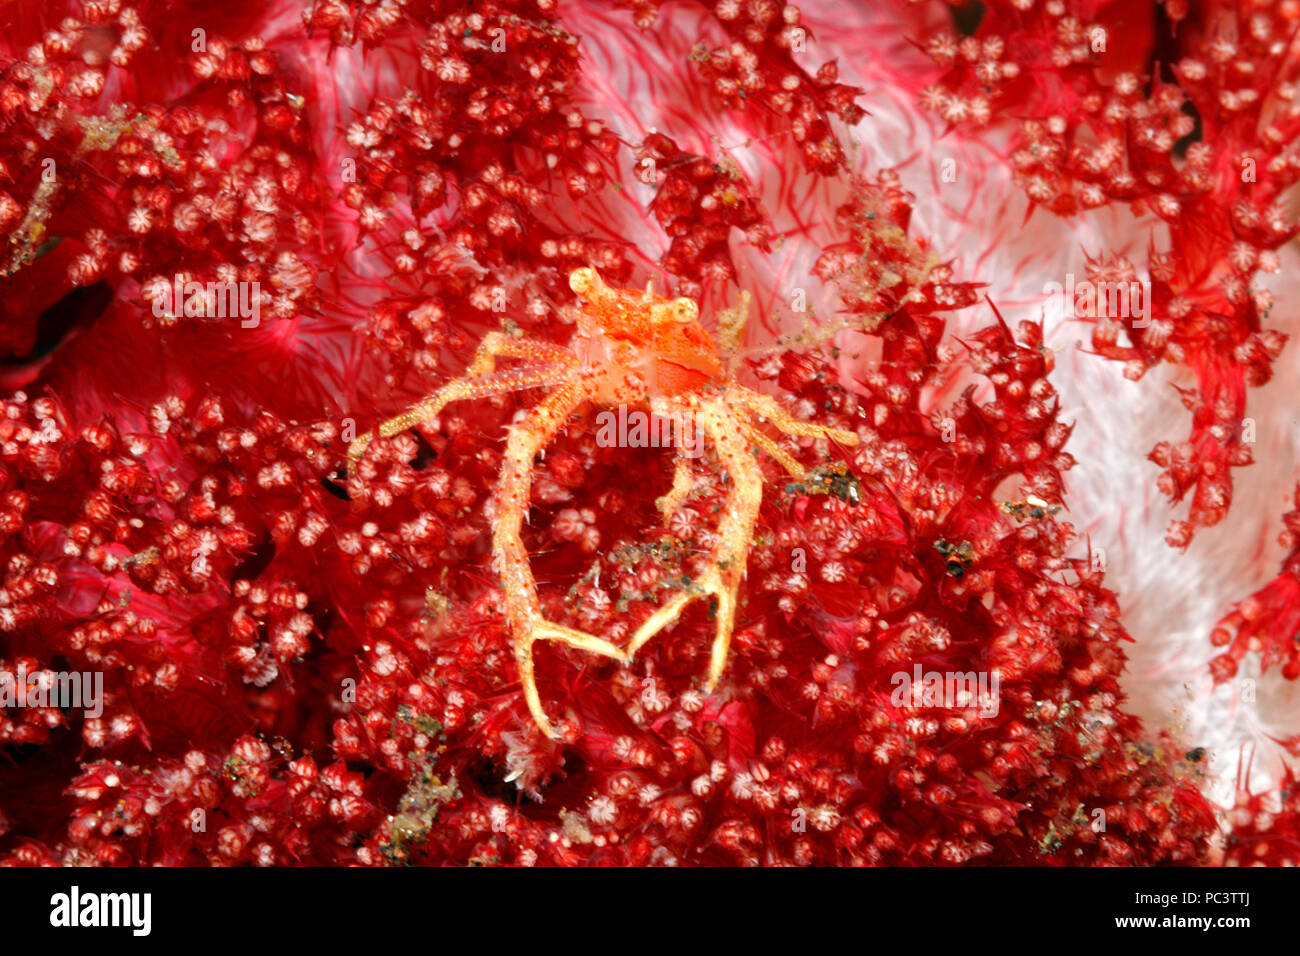 Squat Lobster, Galathea sp, living in red soft corals. Tulamben, Bali, Indonesia. Bali Sea, Indian Ocean - Stock Image